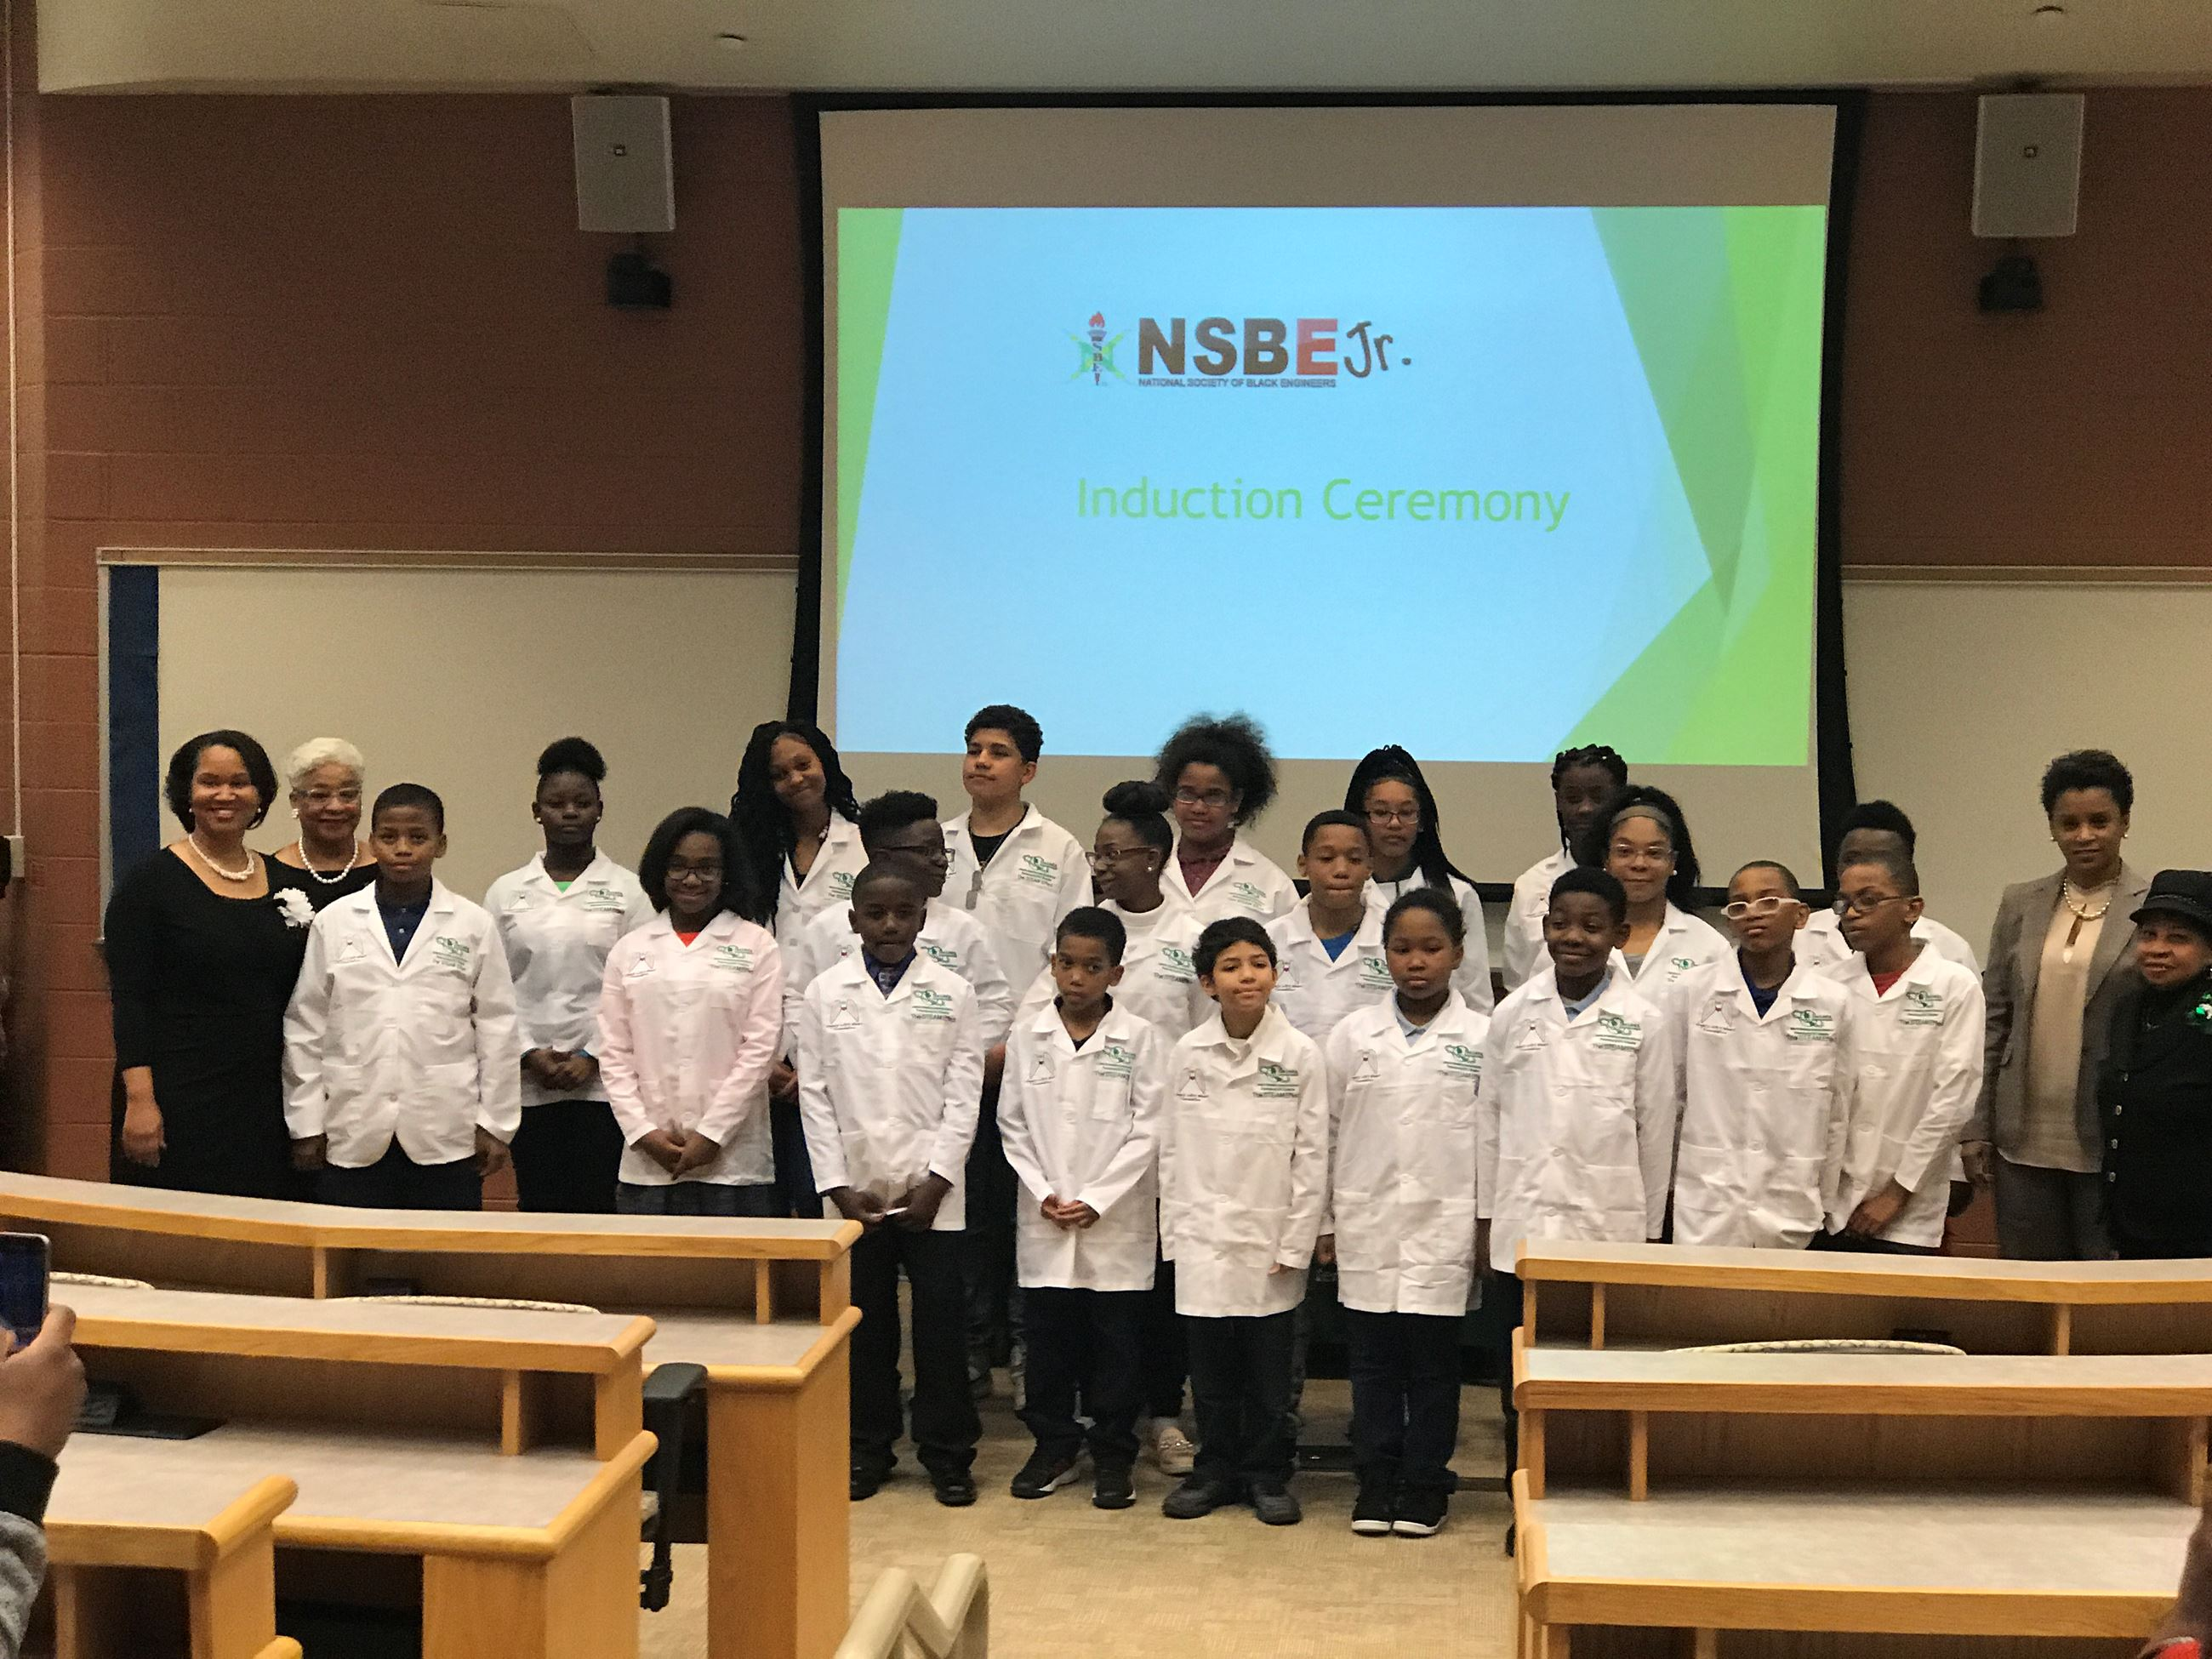 NSBE, JR (Petersburg Links and Petersburg Recreation Partnership